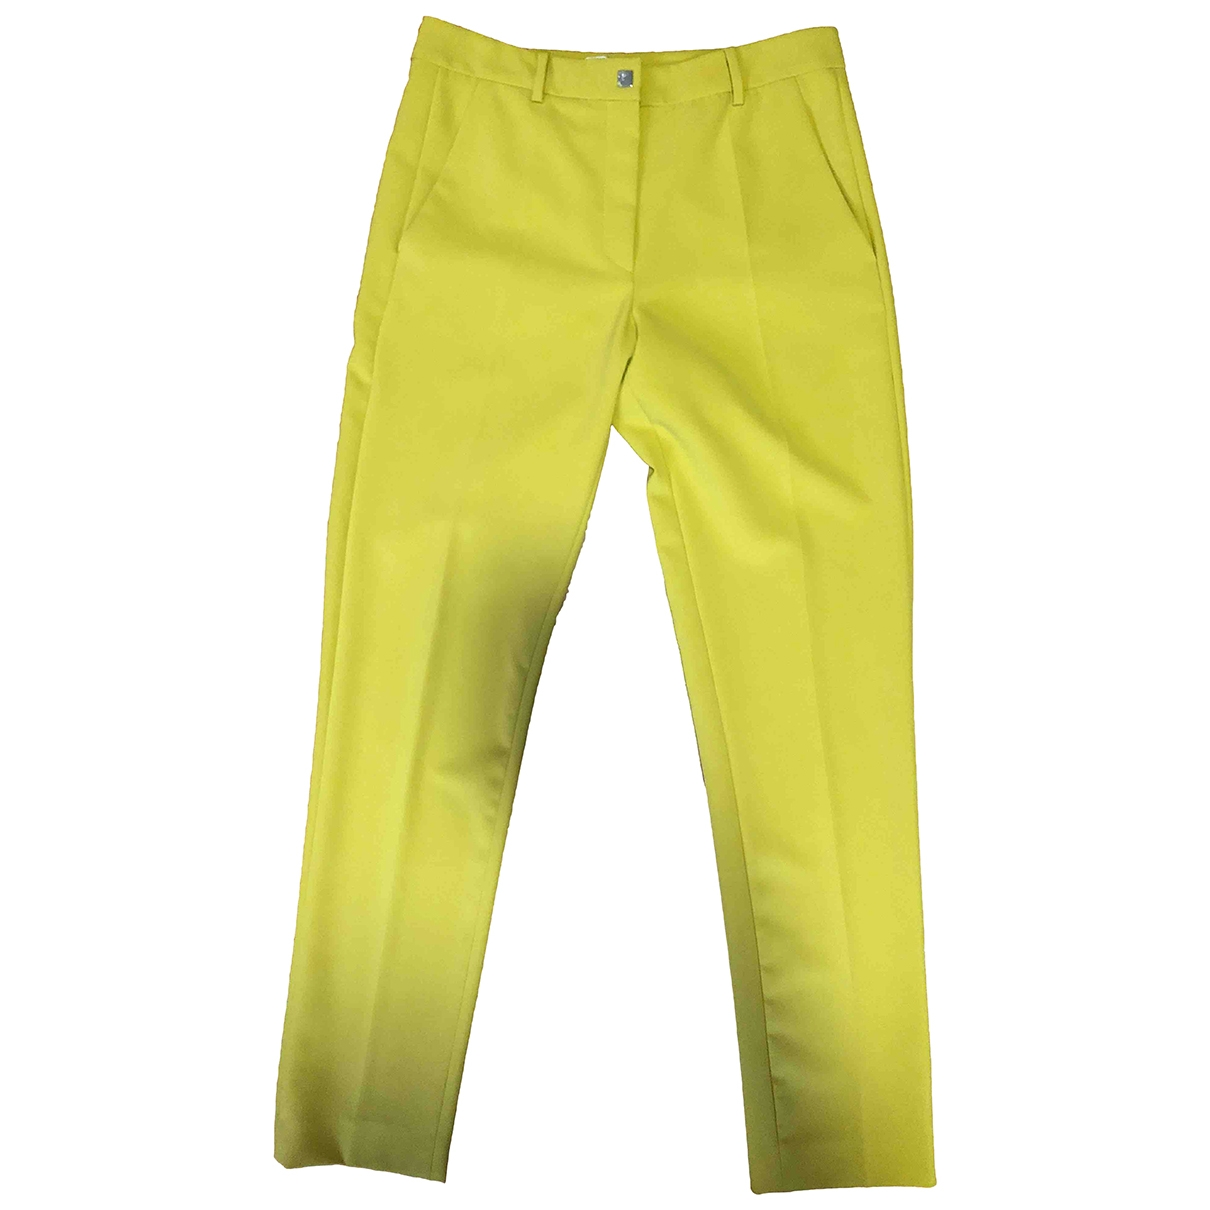 Gianni Versace \N Yellow Trousers for Women 42 IT